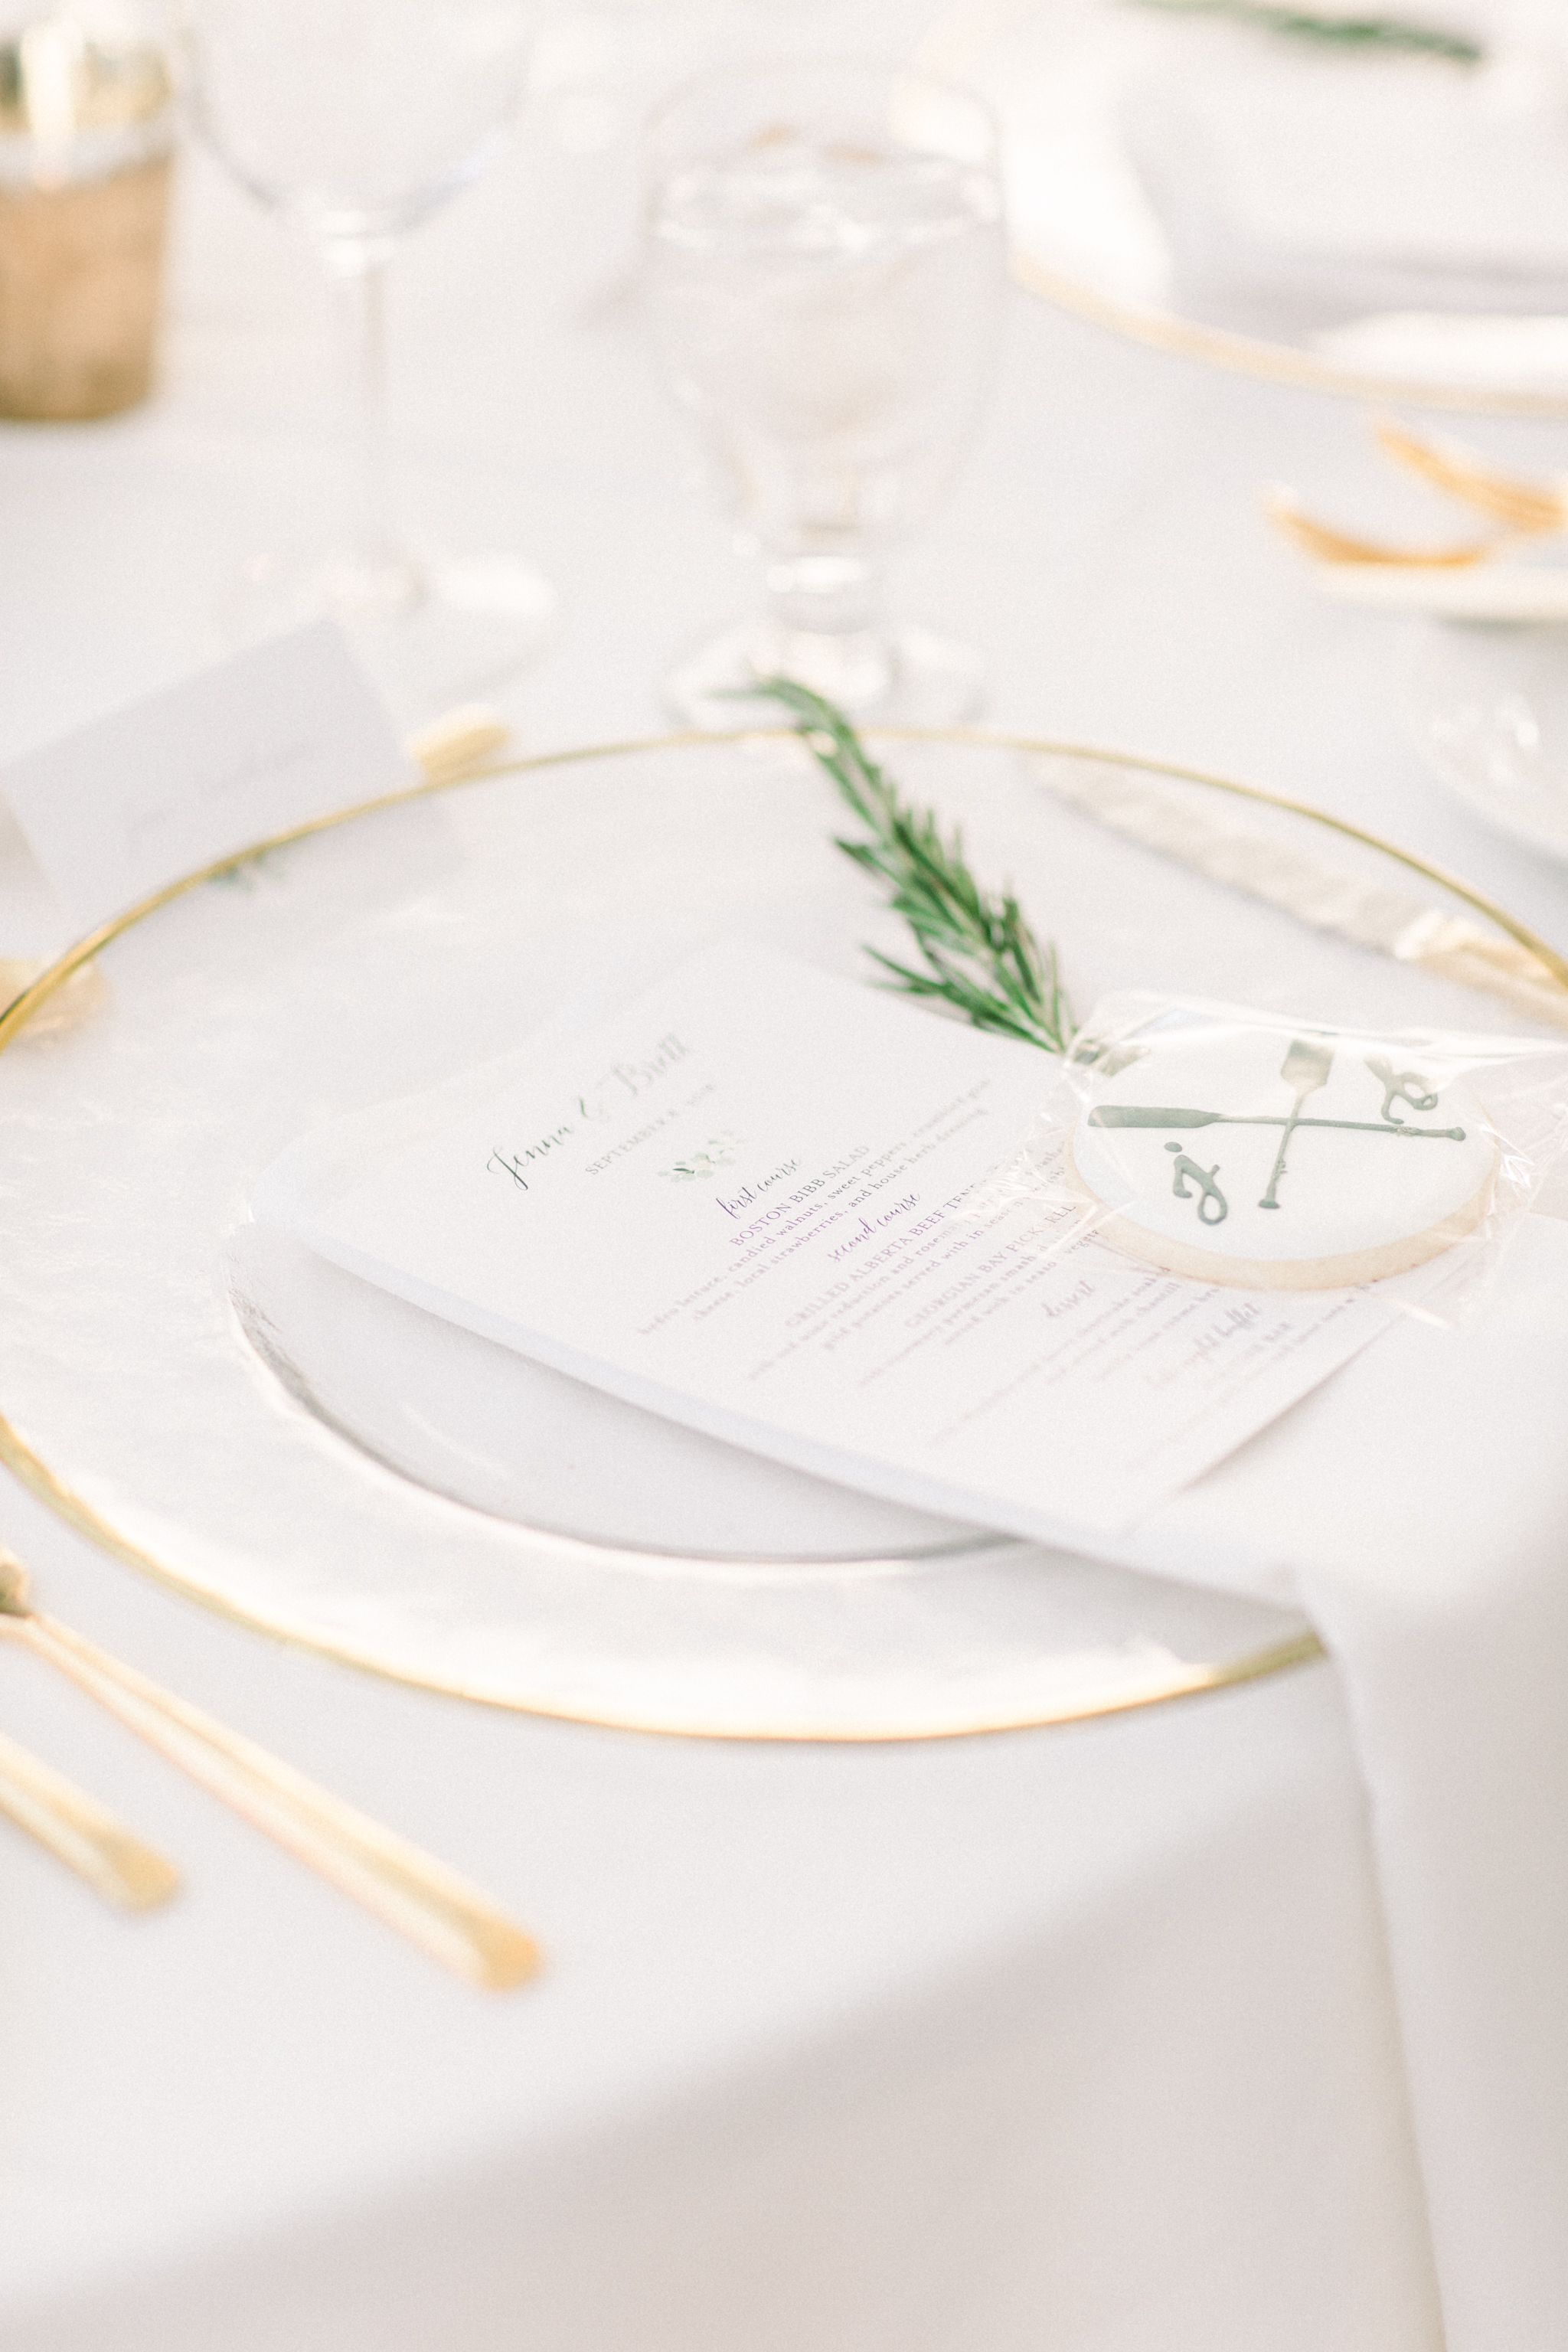 Elegant wedding details.